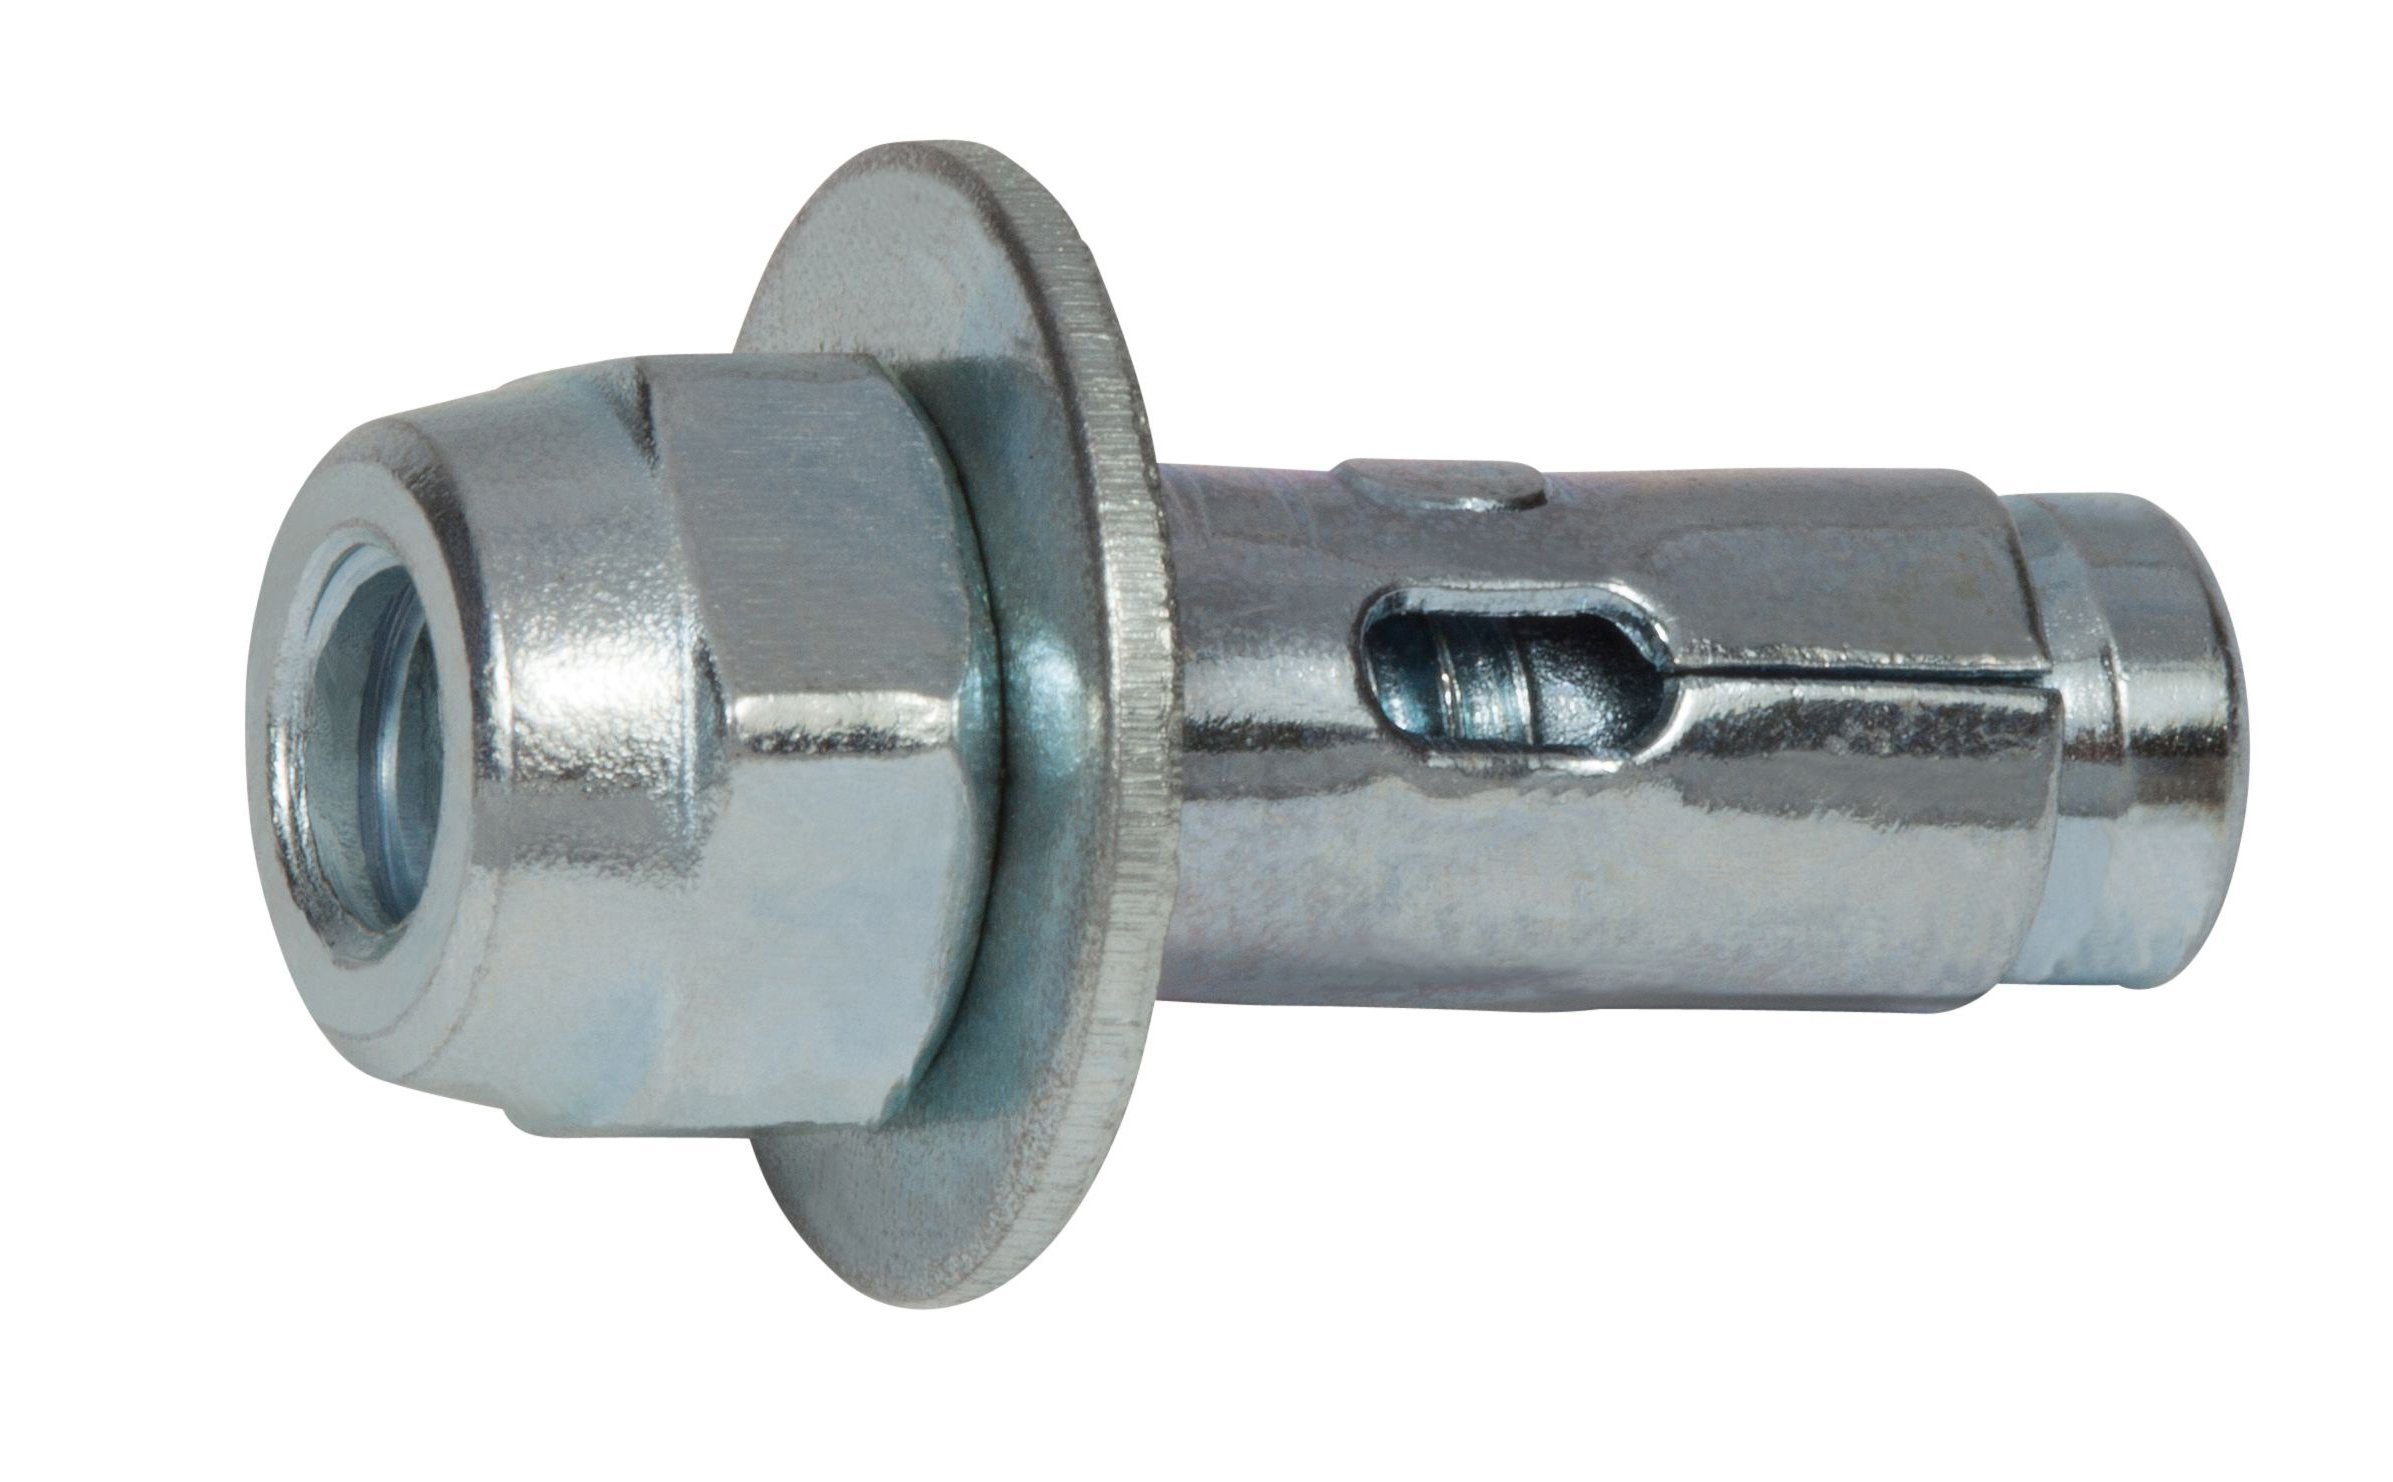 CONFAST 1/4'' x 2-1/4'' 304 Stainless Steel Acorn Sleeve Anchor (100 per box)